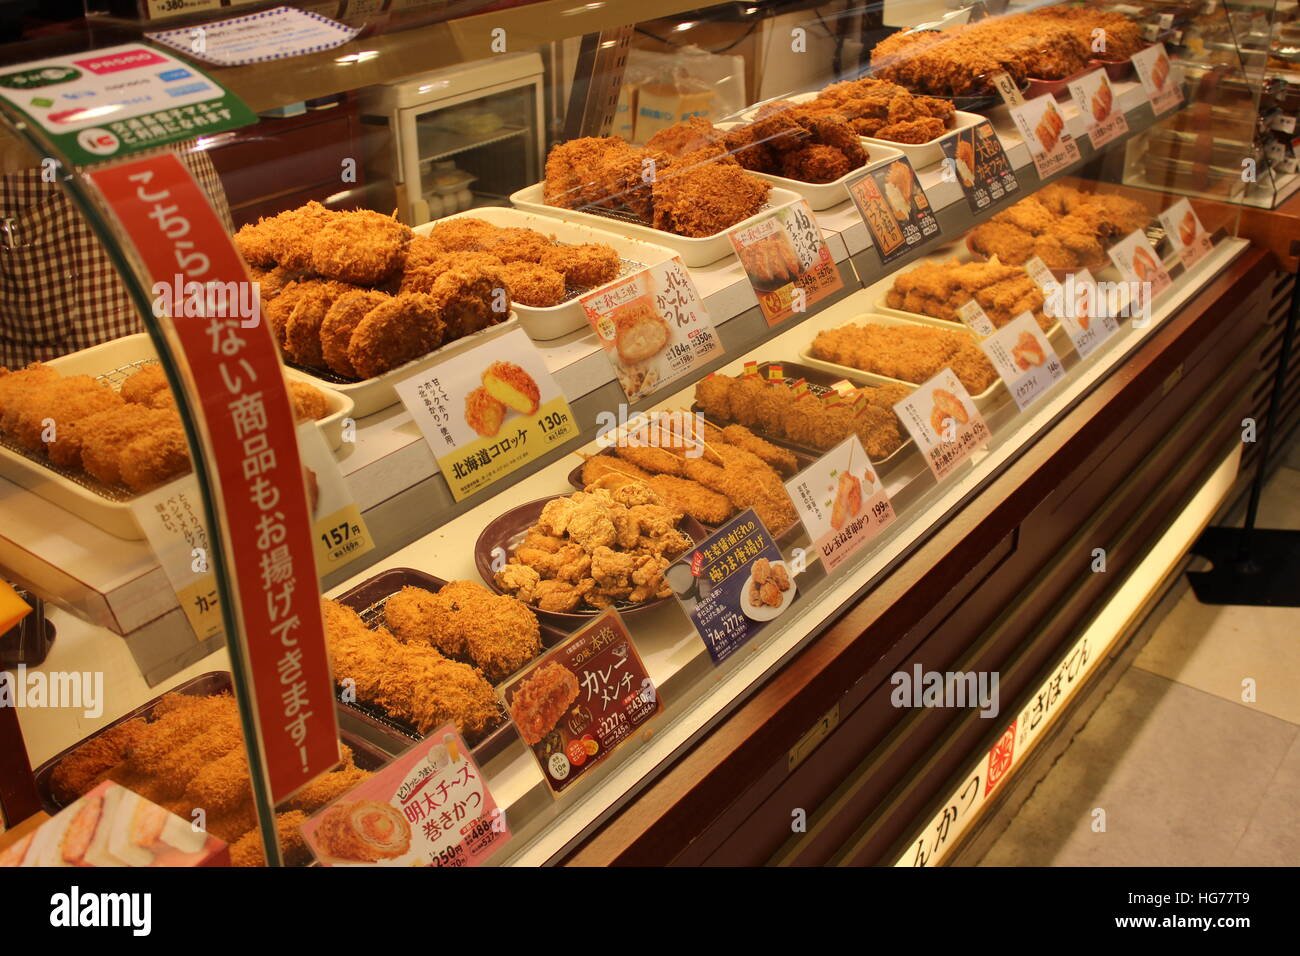 A case filled with various fried savory and sweet foods in Tokyo, Japan - Stock Image